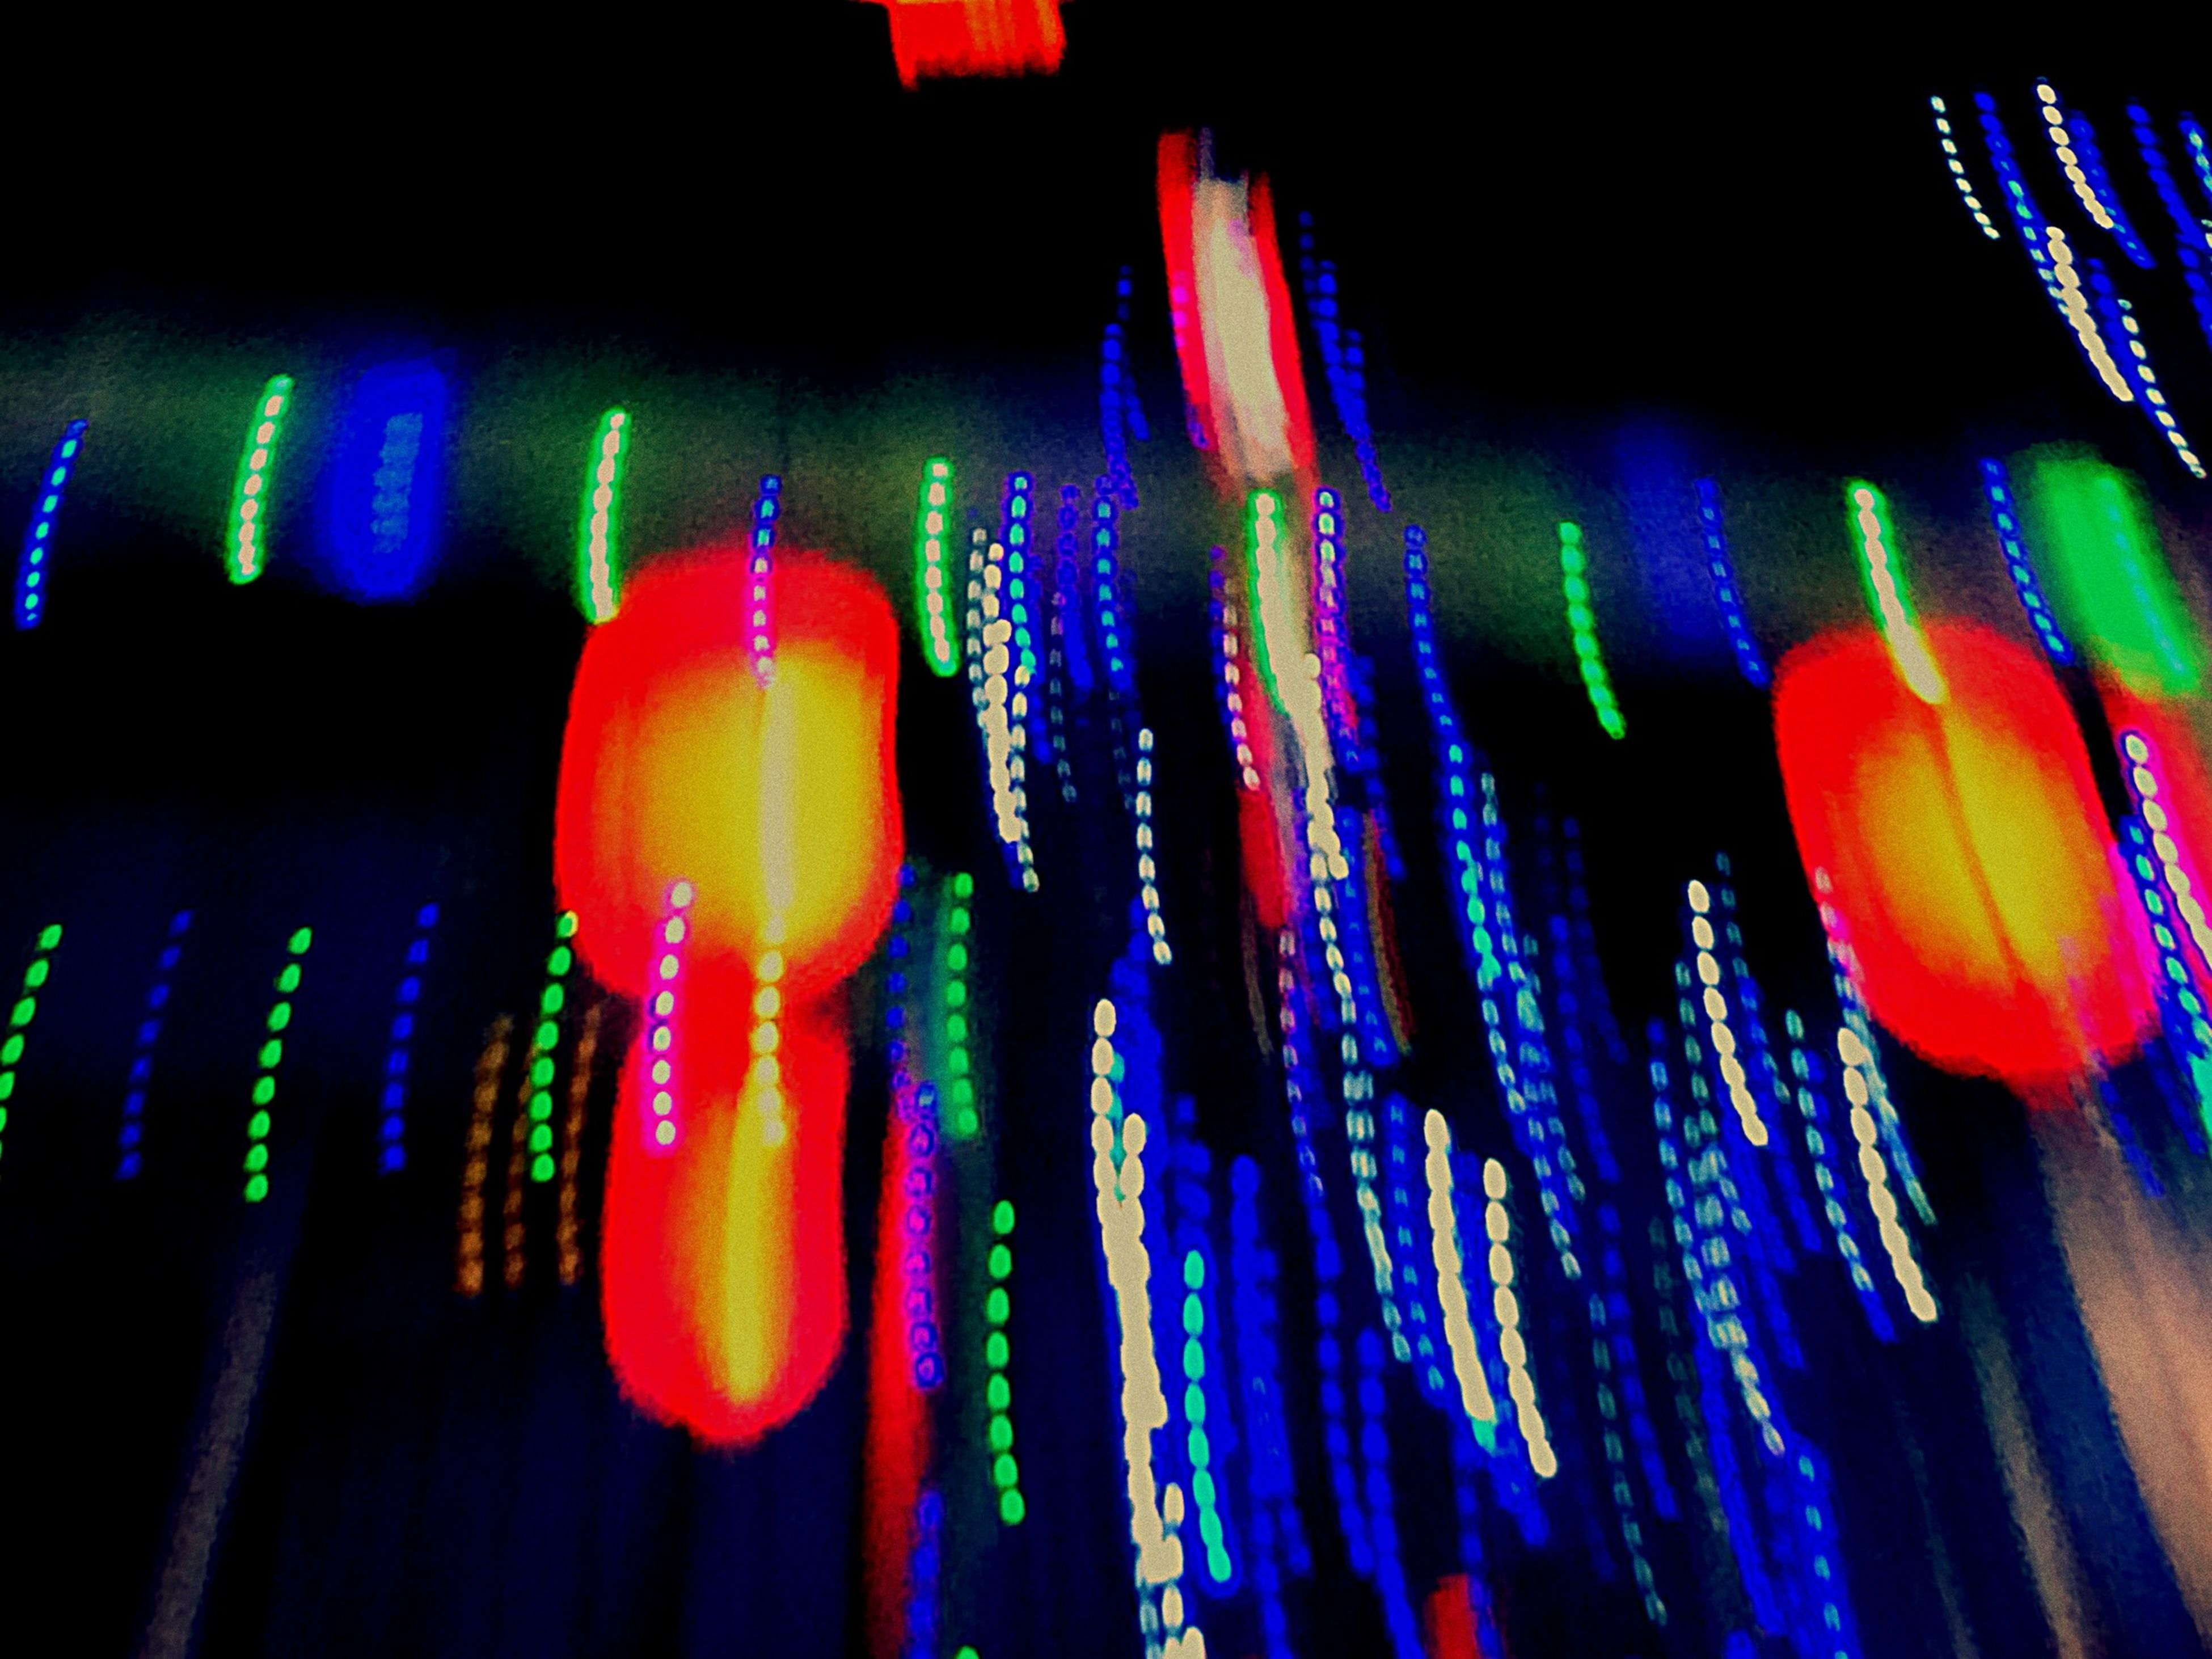 illuminated, multi colored, indoors, night, colorful, hanging, still life, variation, celebration, lighting equipment, decoration, low angle view, large group of objects, close-up, in a row, glowing, light - natural phenomenon, no people, choice, blue